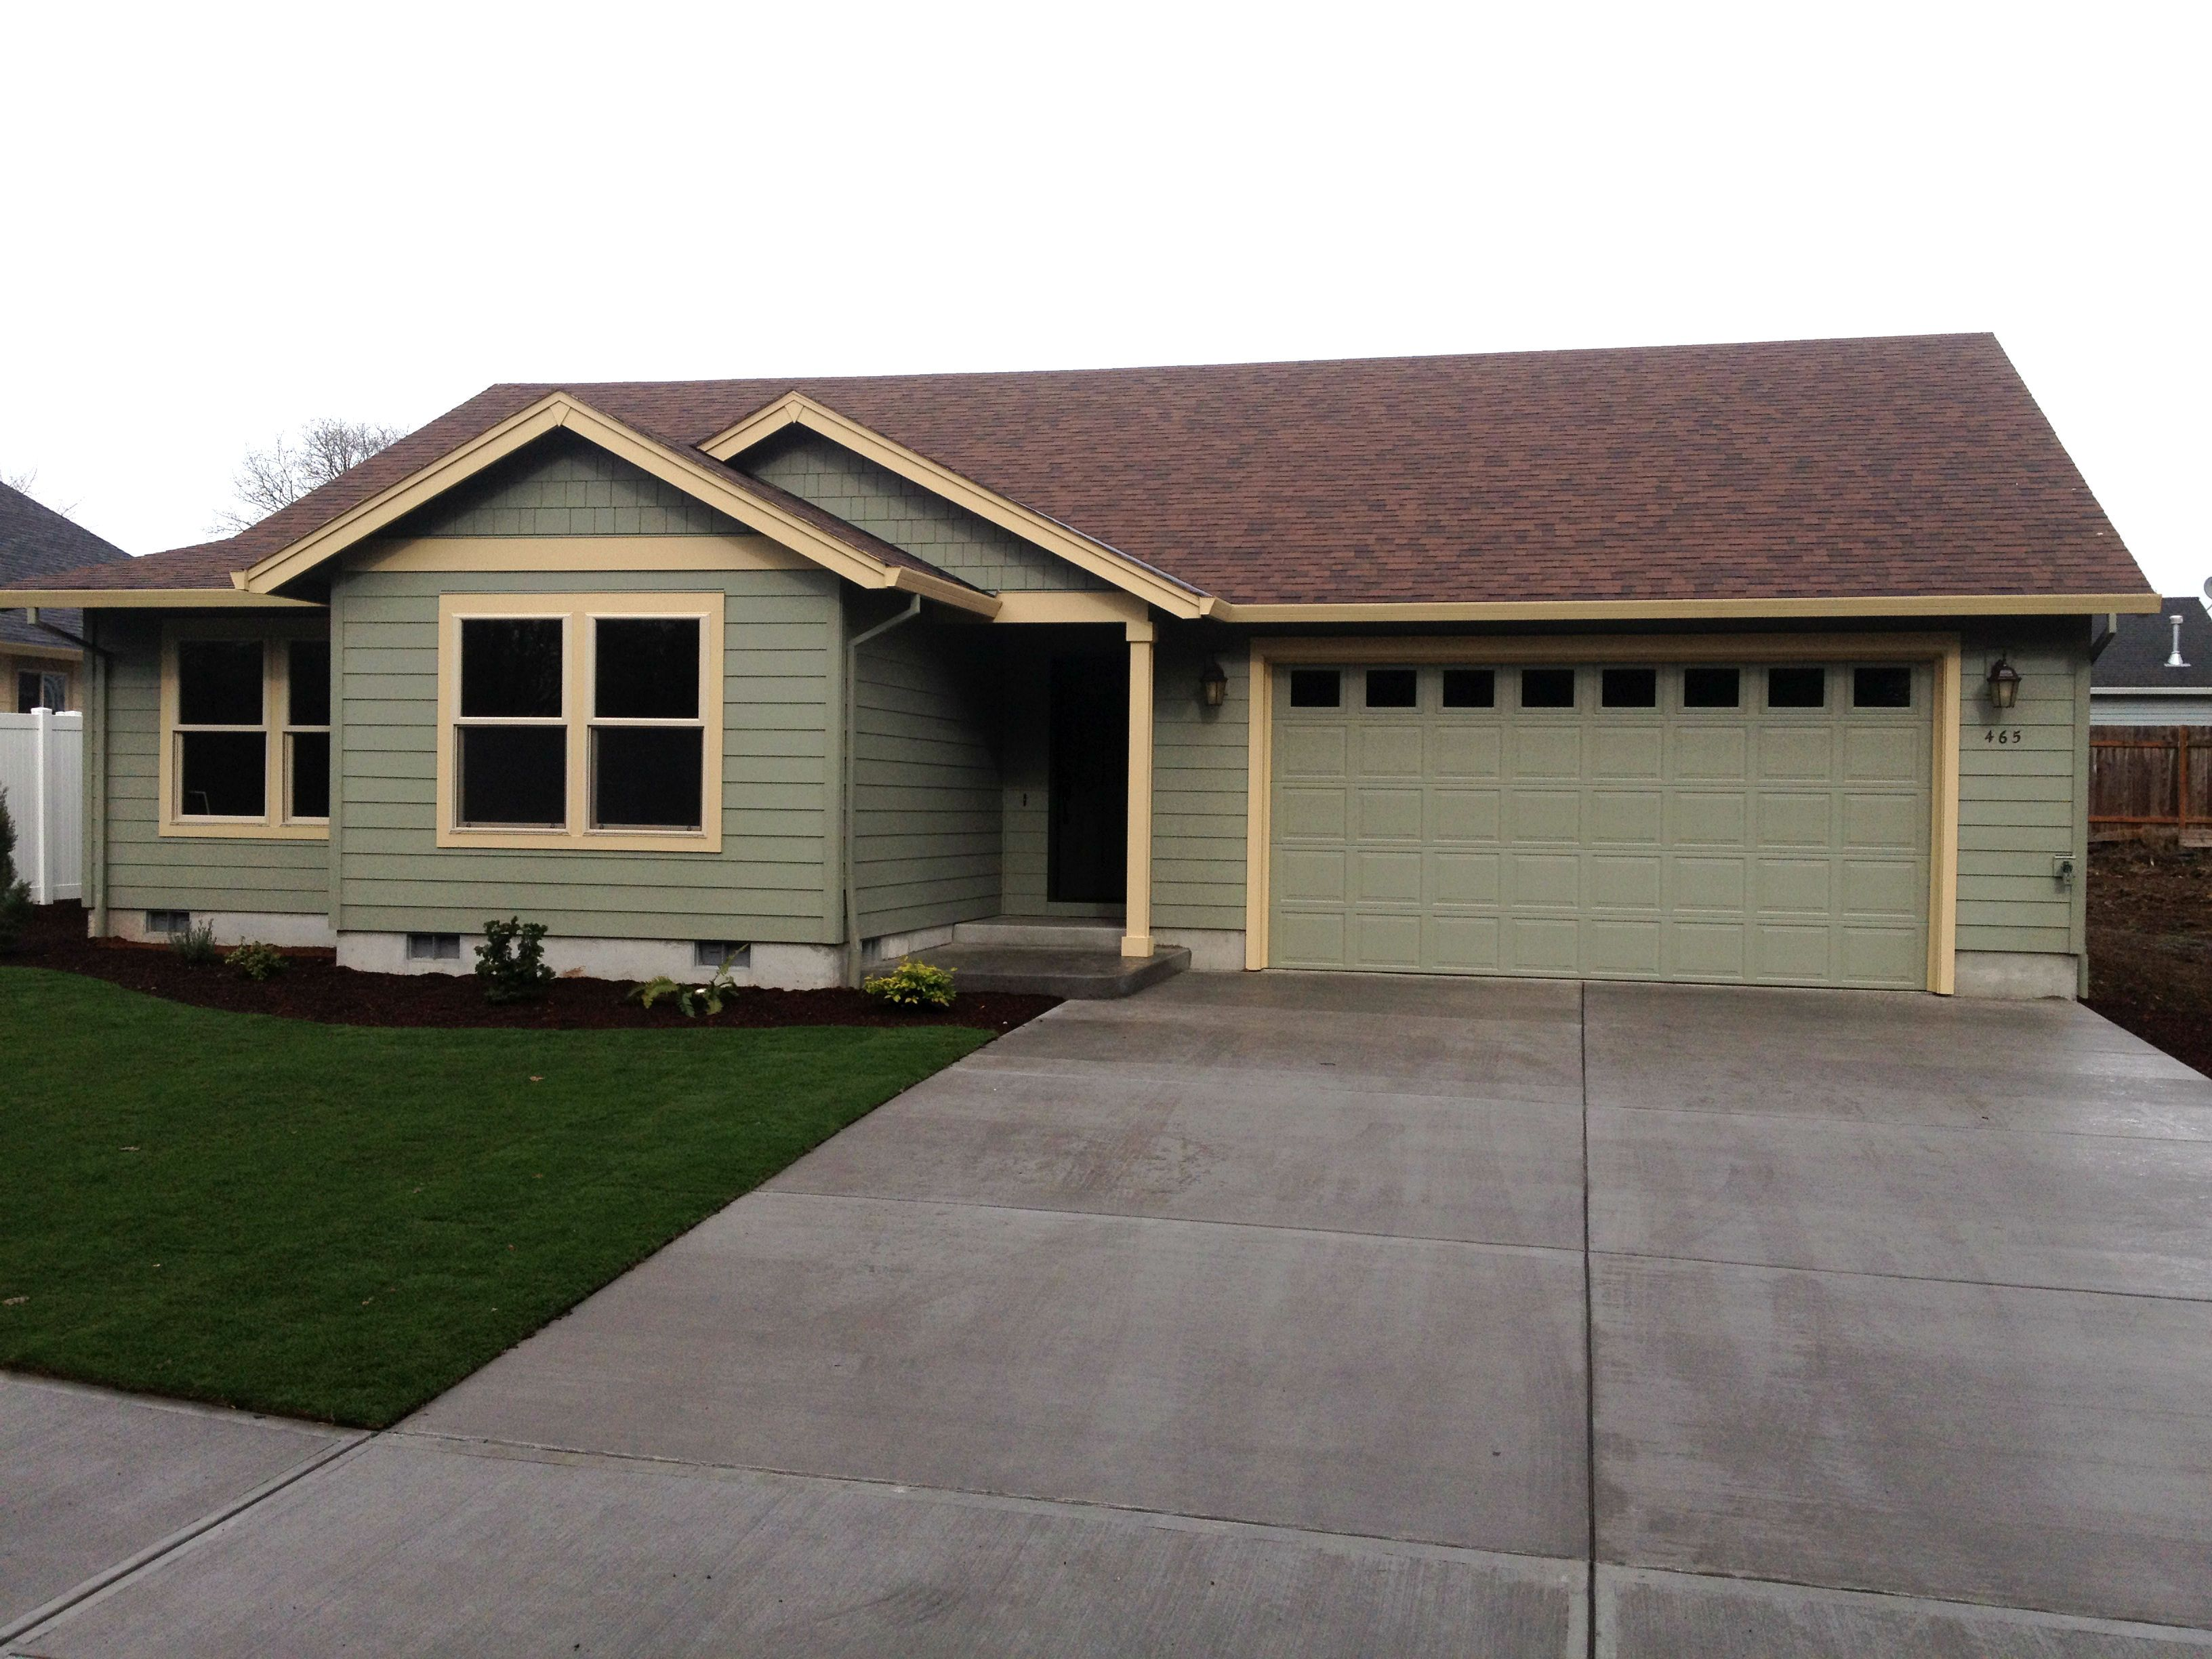 Another Project We Completed For Dr Horton Using James Har Fiber Cement Siding Products Love The Mint Green Color Choice